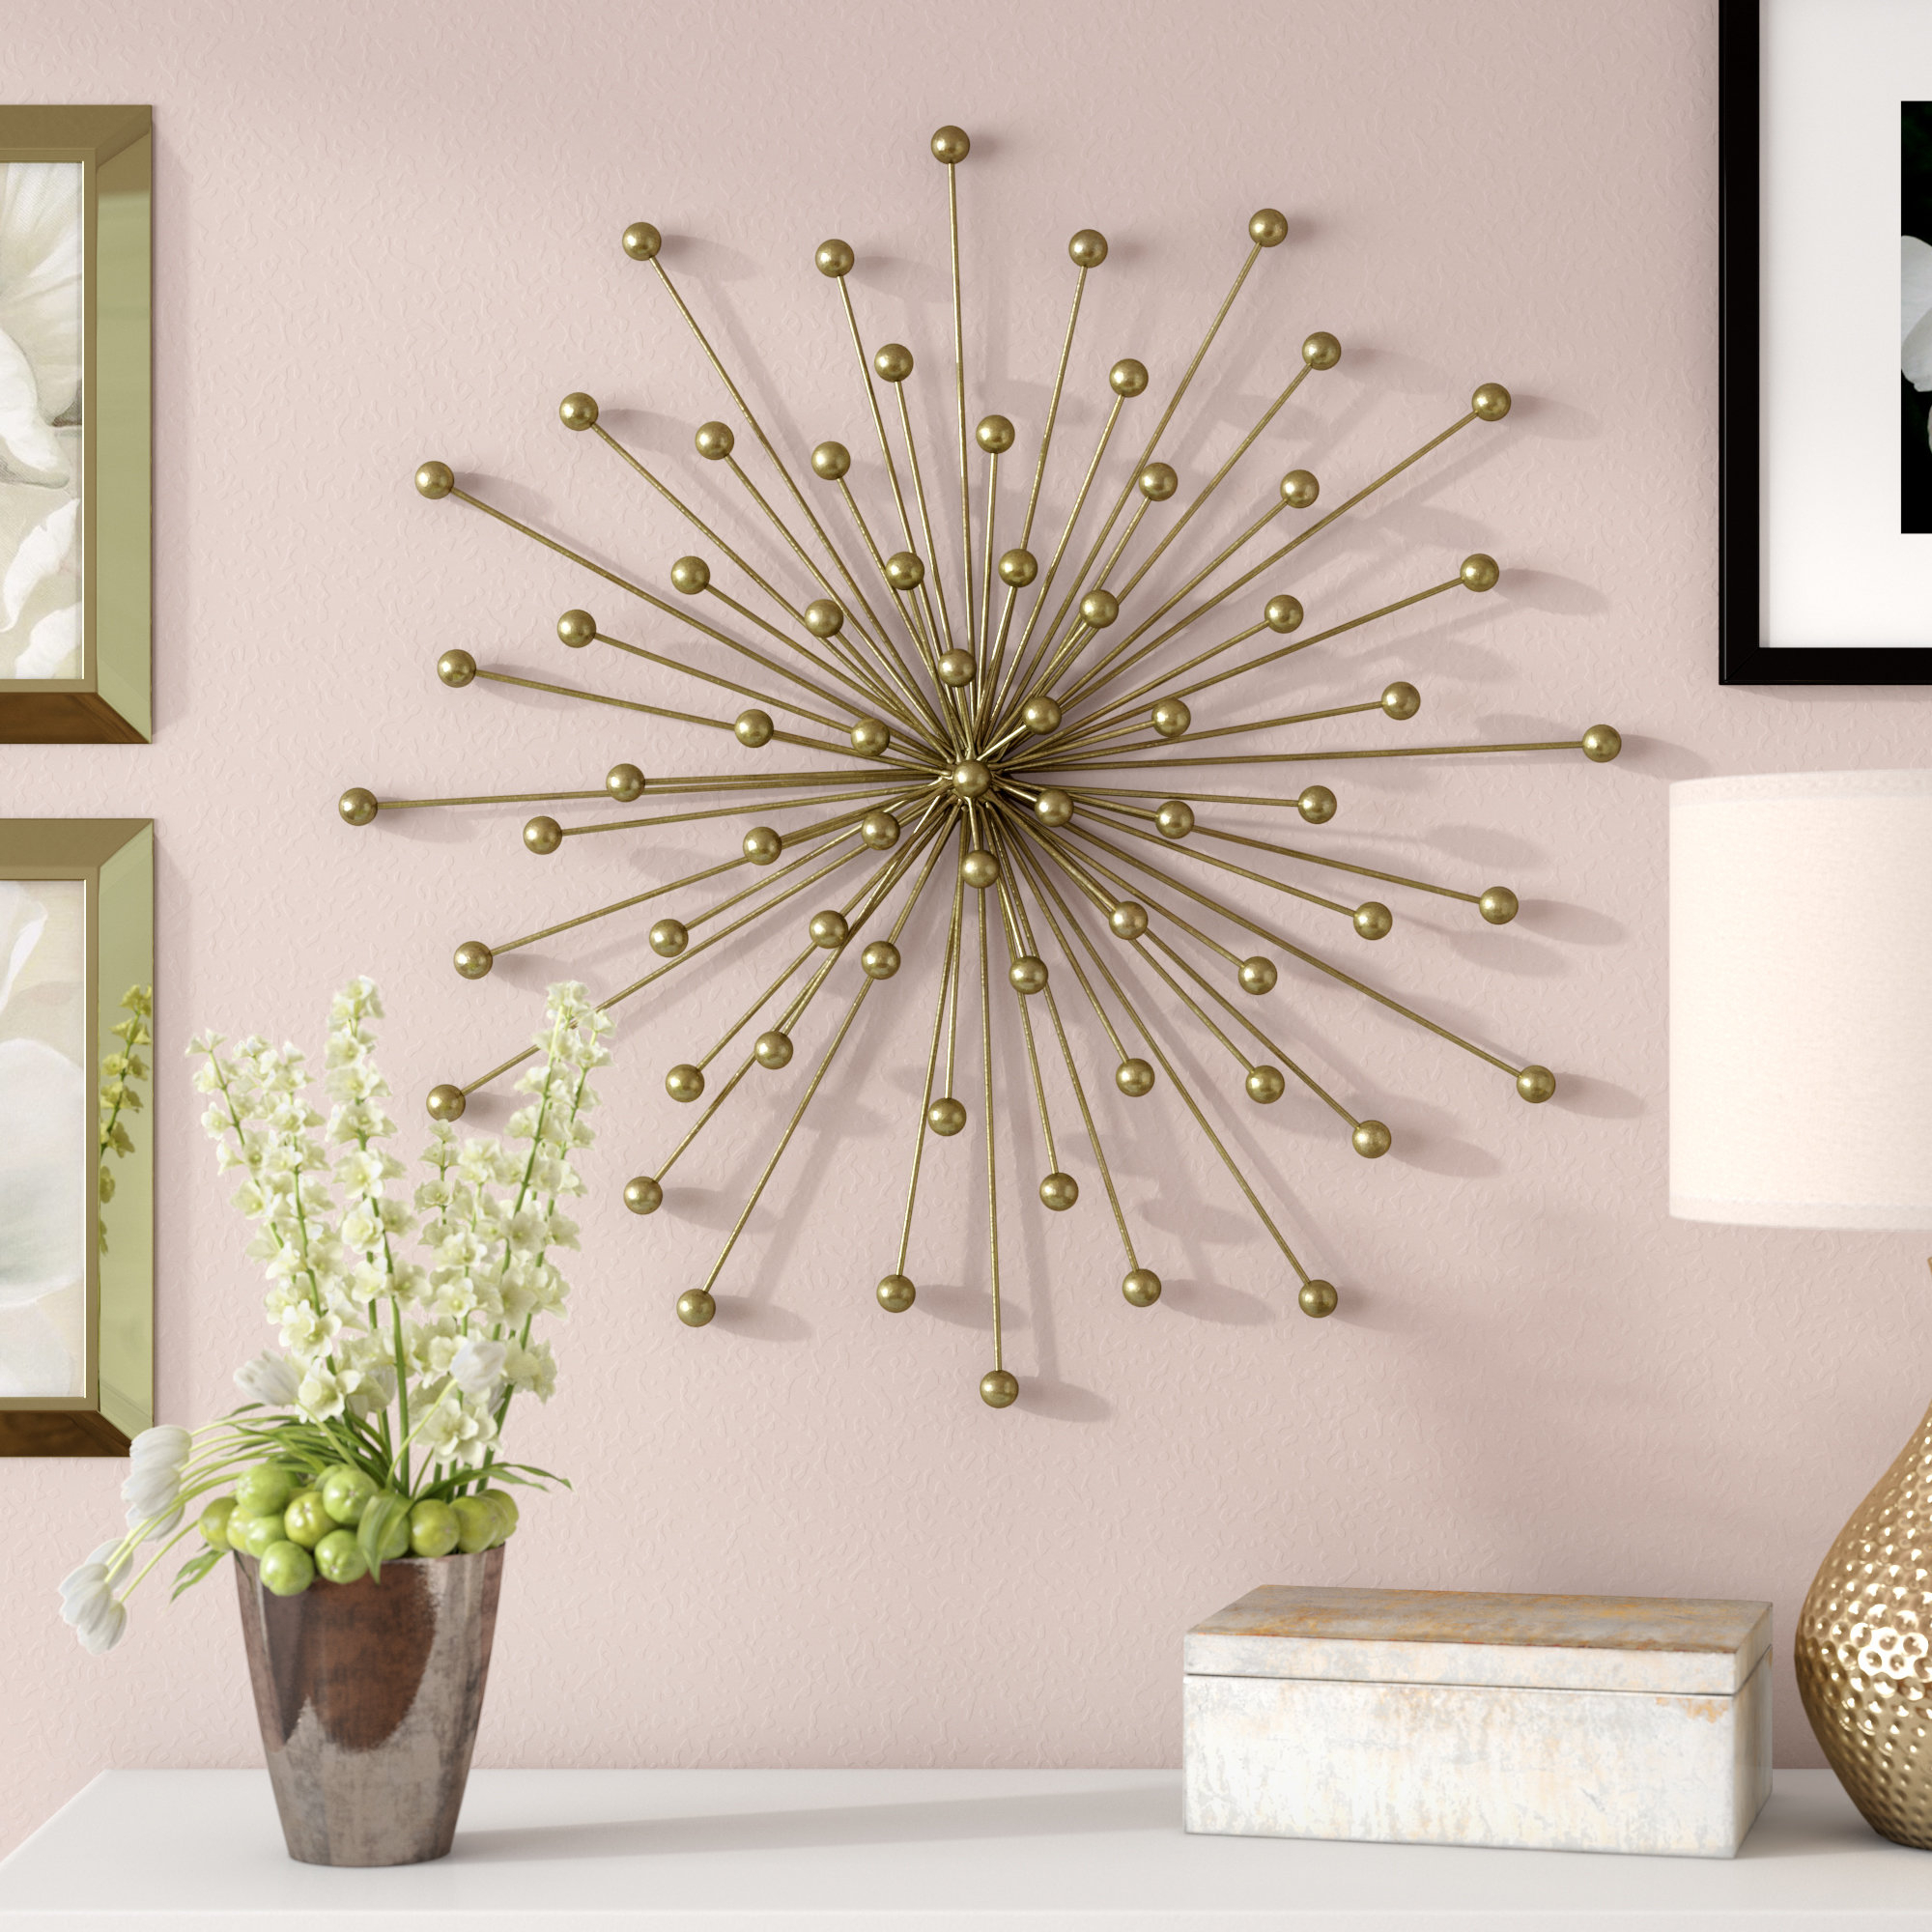 Burst Wall Décor with Starburst Wall Decor by Willa Arlo Interiors (Image 5 of 30)